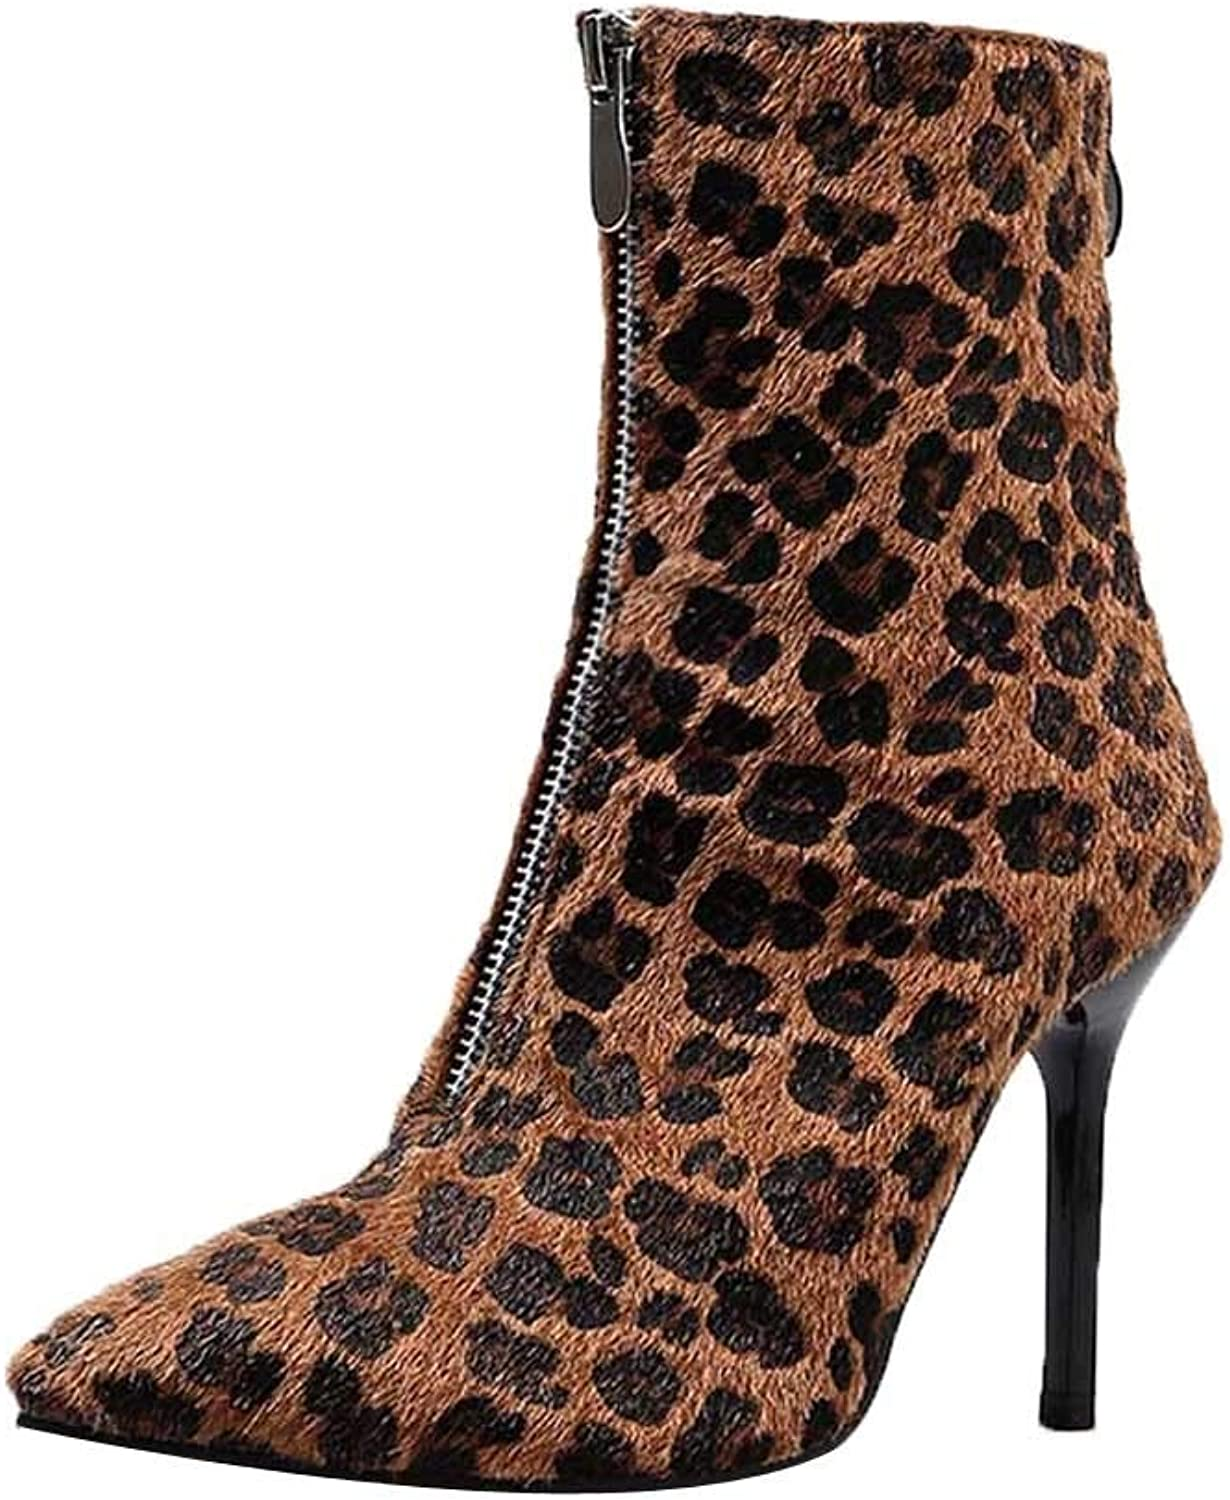 RedBrowm-women Leopard High Heel Ankle Boots Sexy Pumps Toe Pointed Boots shoes High Heel